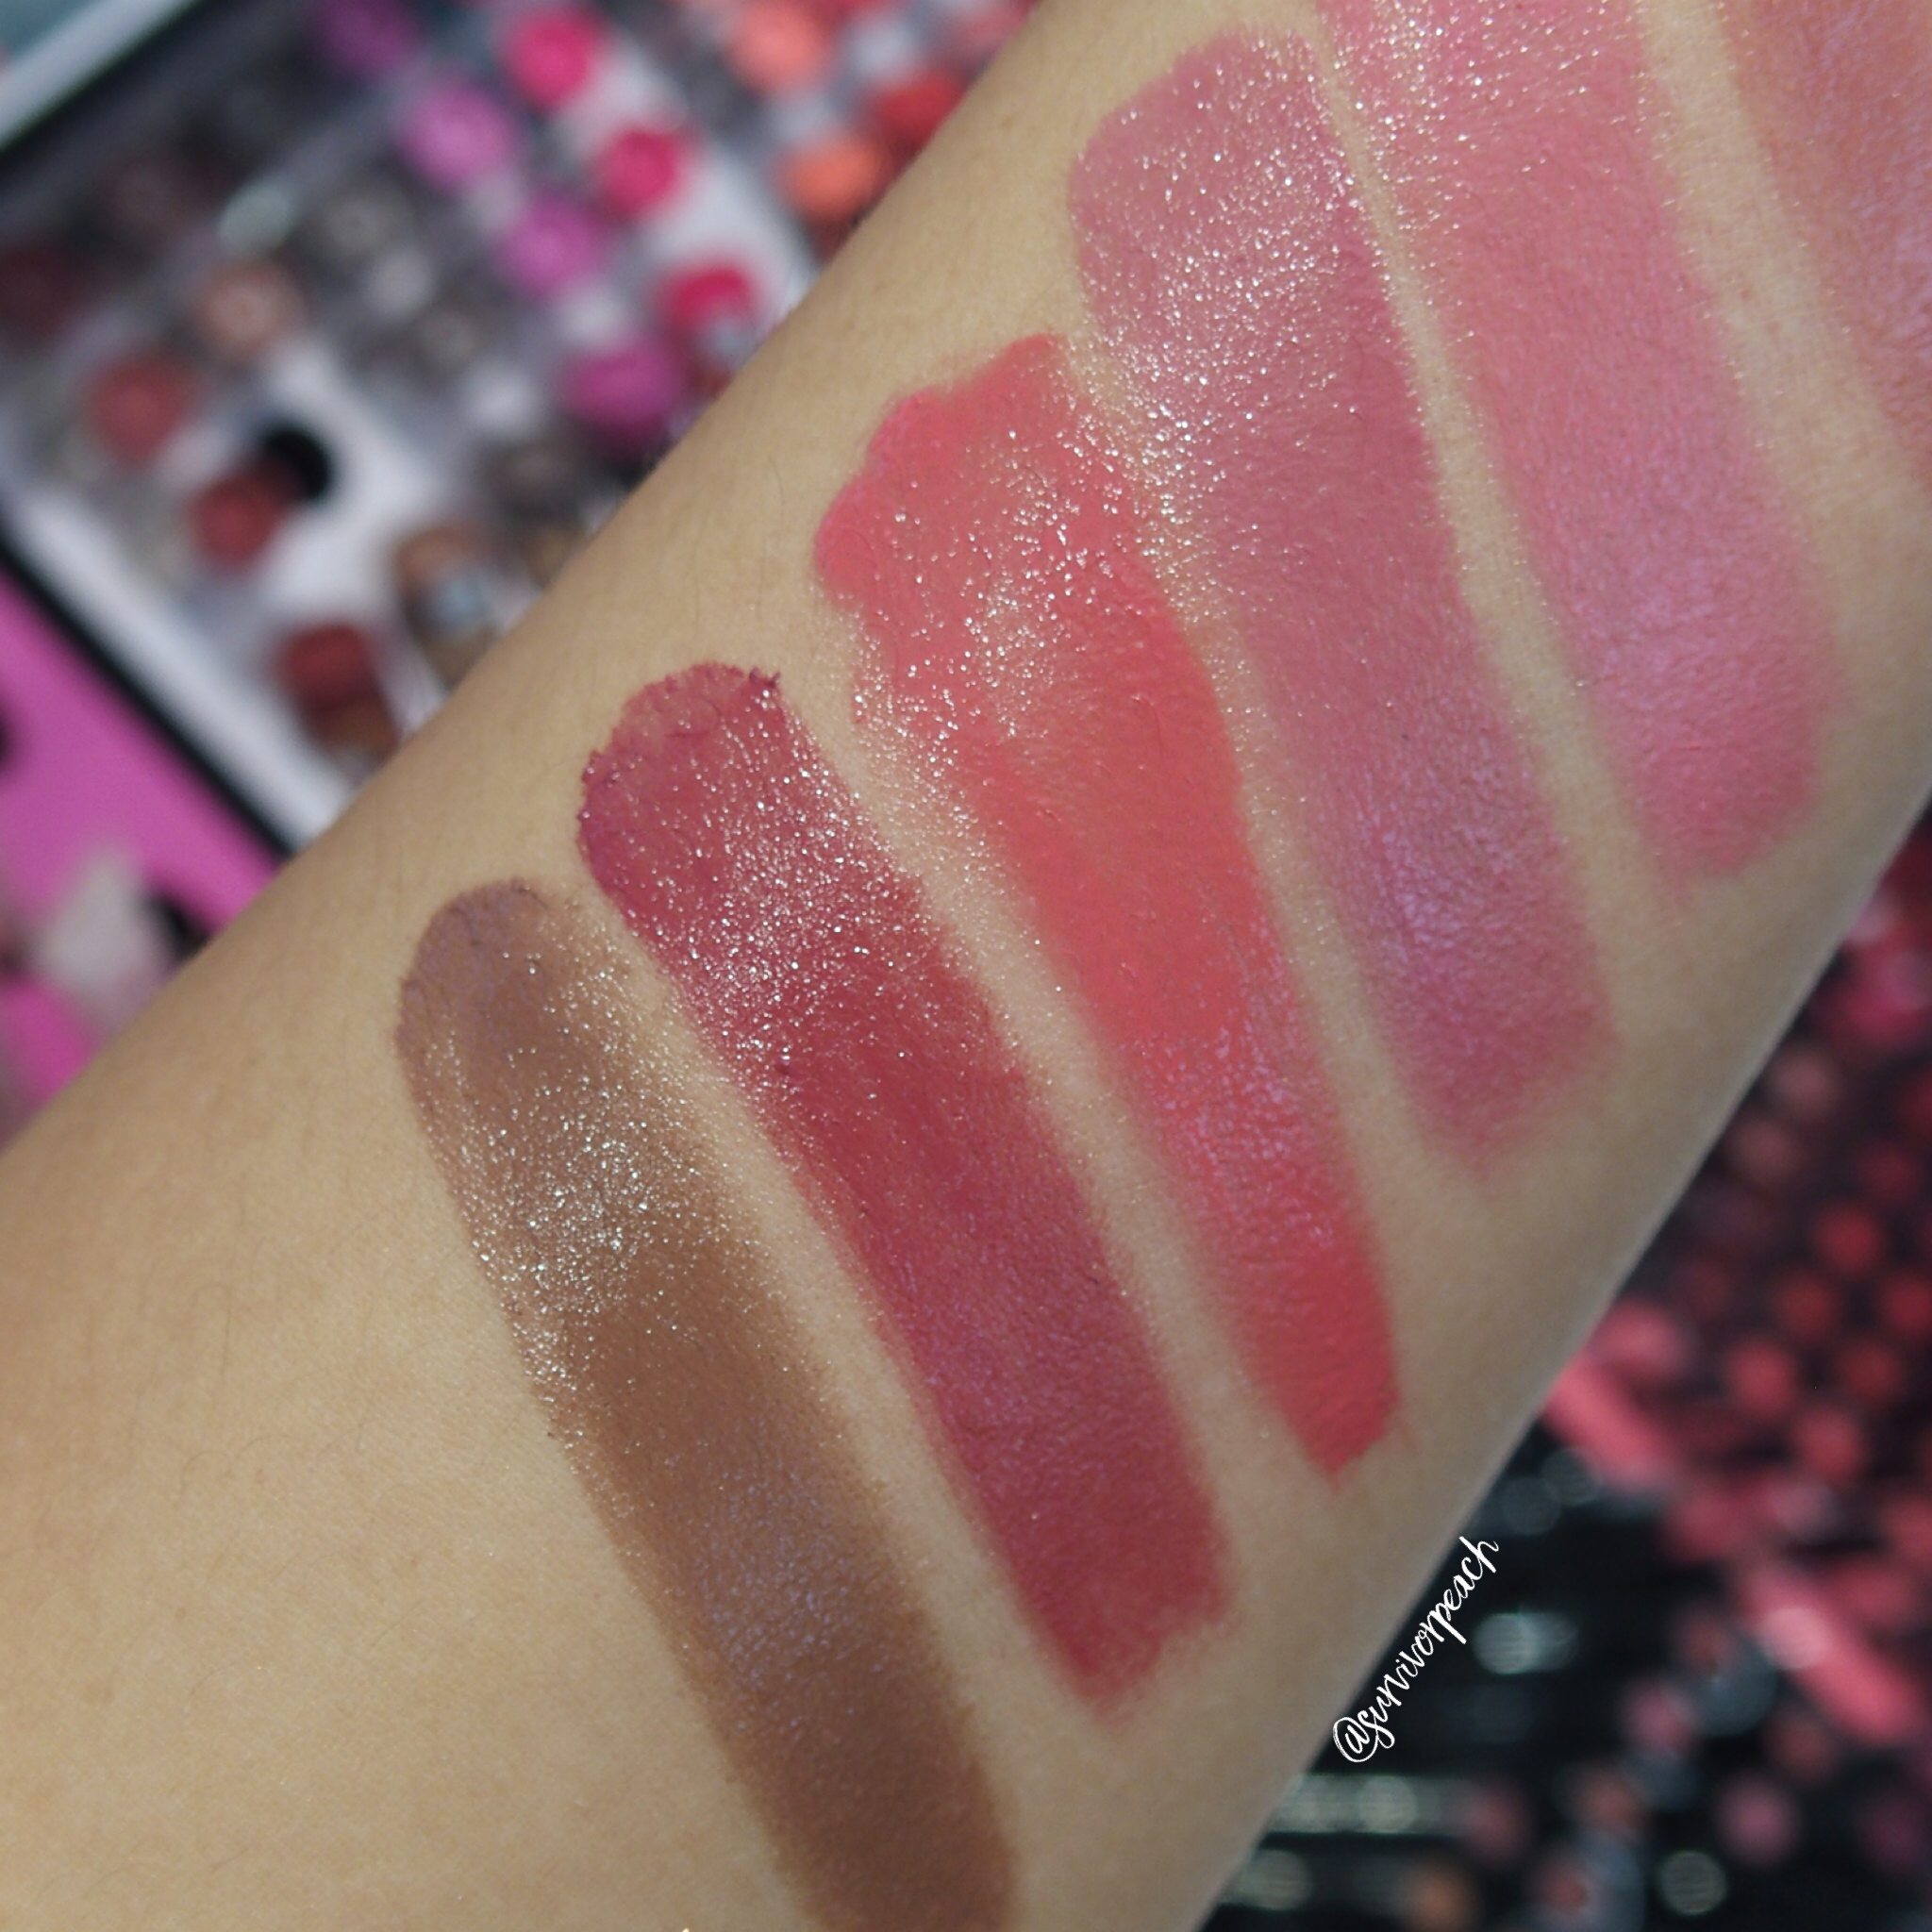 Sephora Collection Lipstick Rouge Lacquer Lipstick swatches- L17 Rise Above, L18 Slay, L19 Stronger, L20 Squad Goals